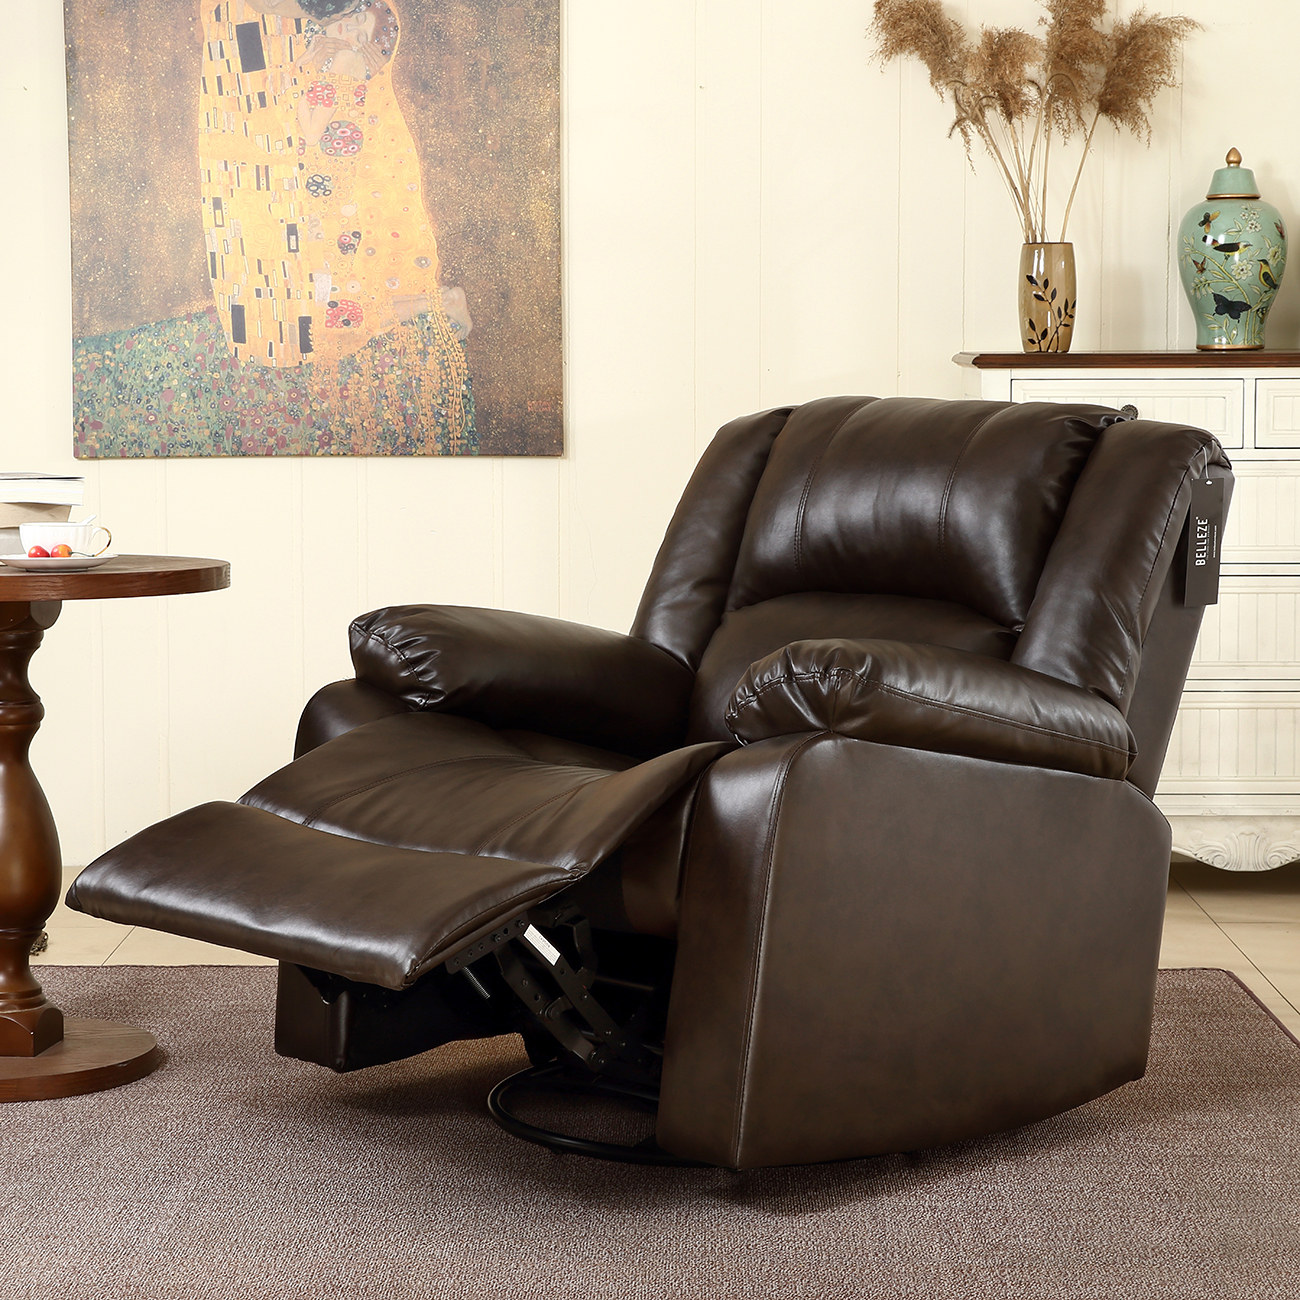 Recliner Rocking Chair New Recliner And Rocking Swivel Chair Leather Seat Living